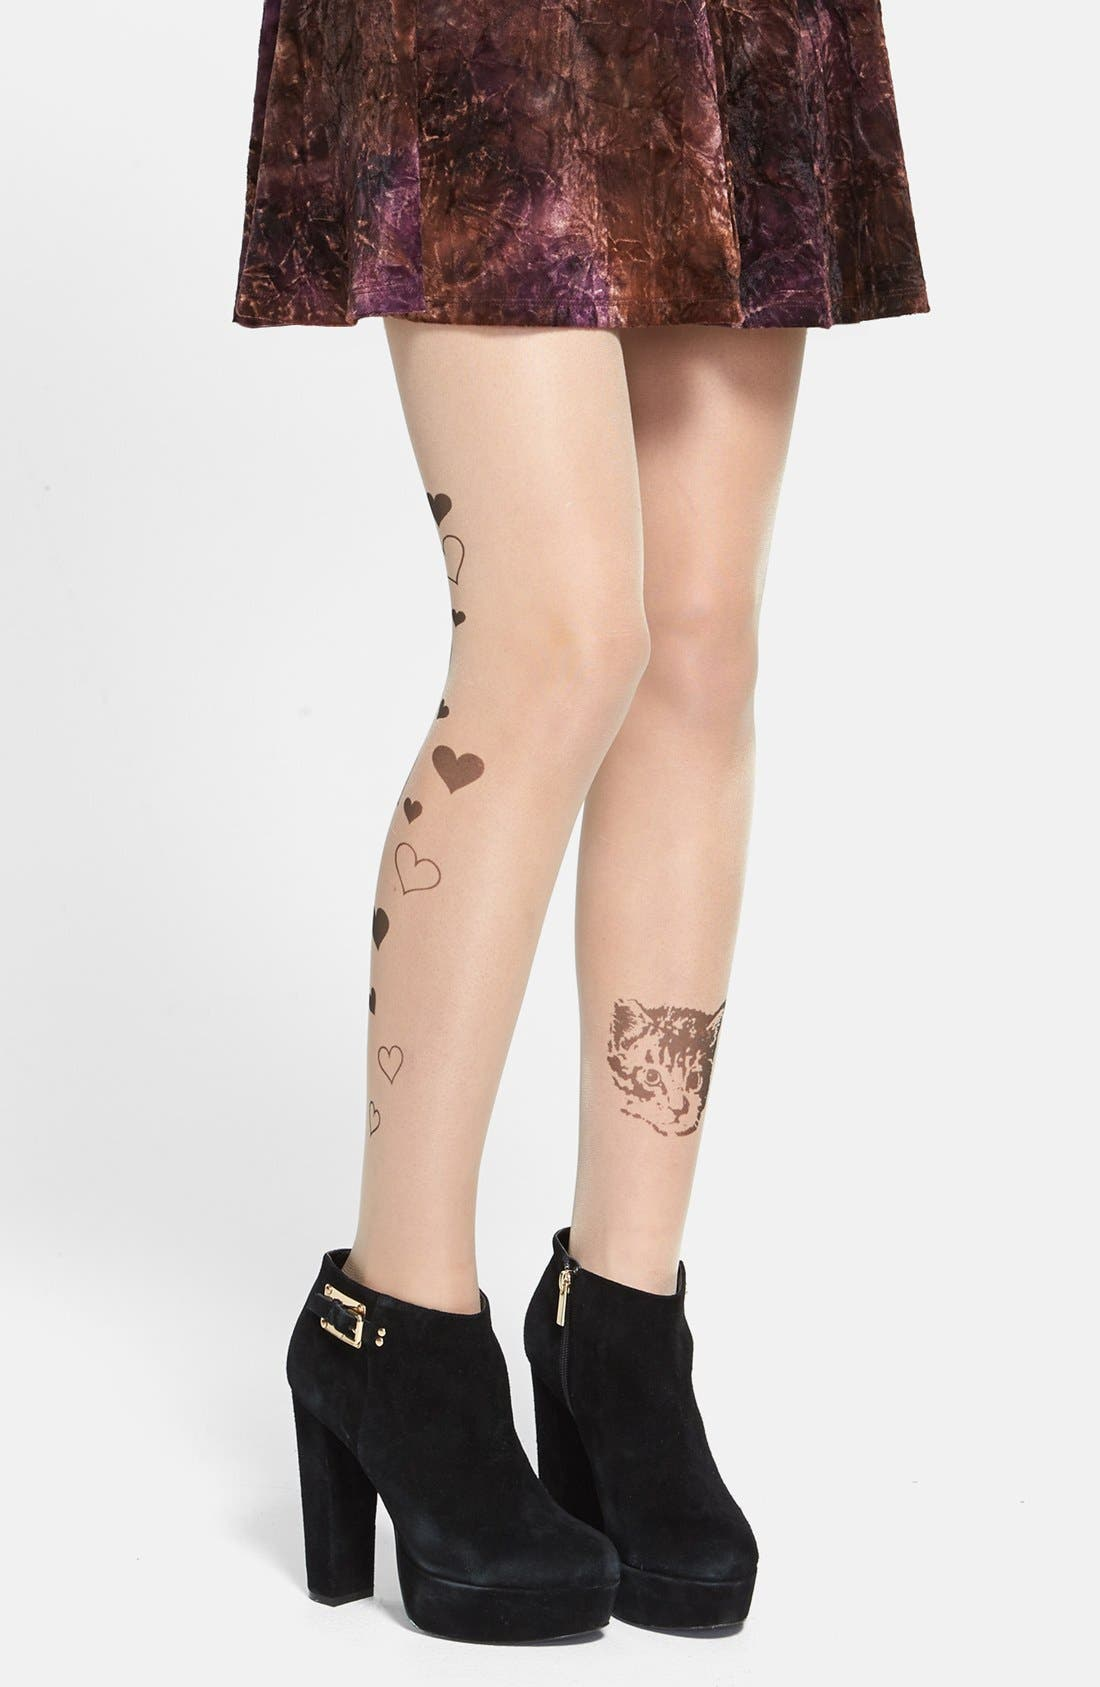 Main Image - BP. 'Kitty & Heart Tattoo' Tights (Juniors)